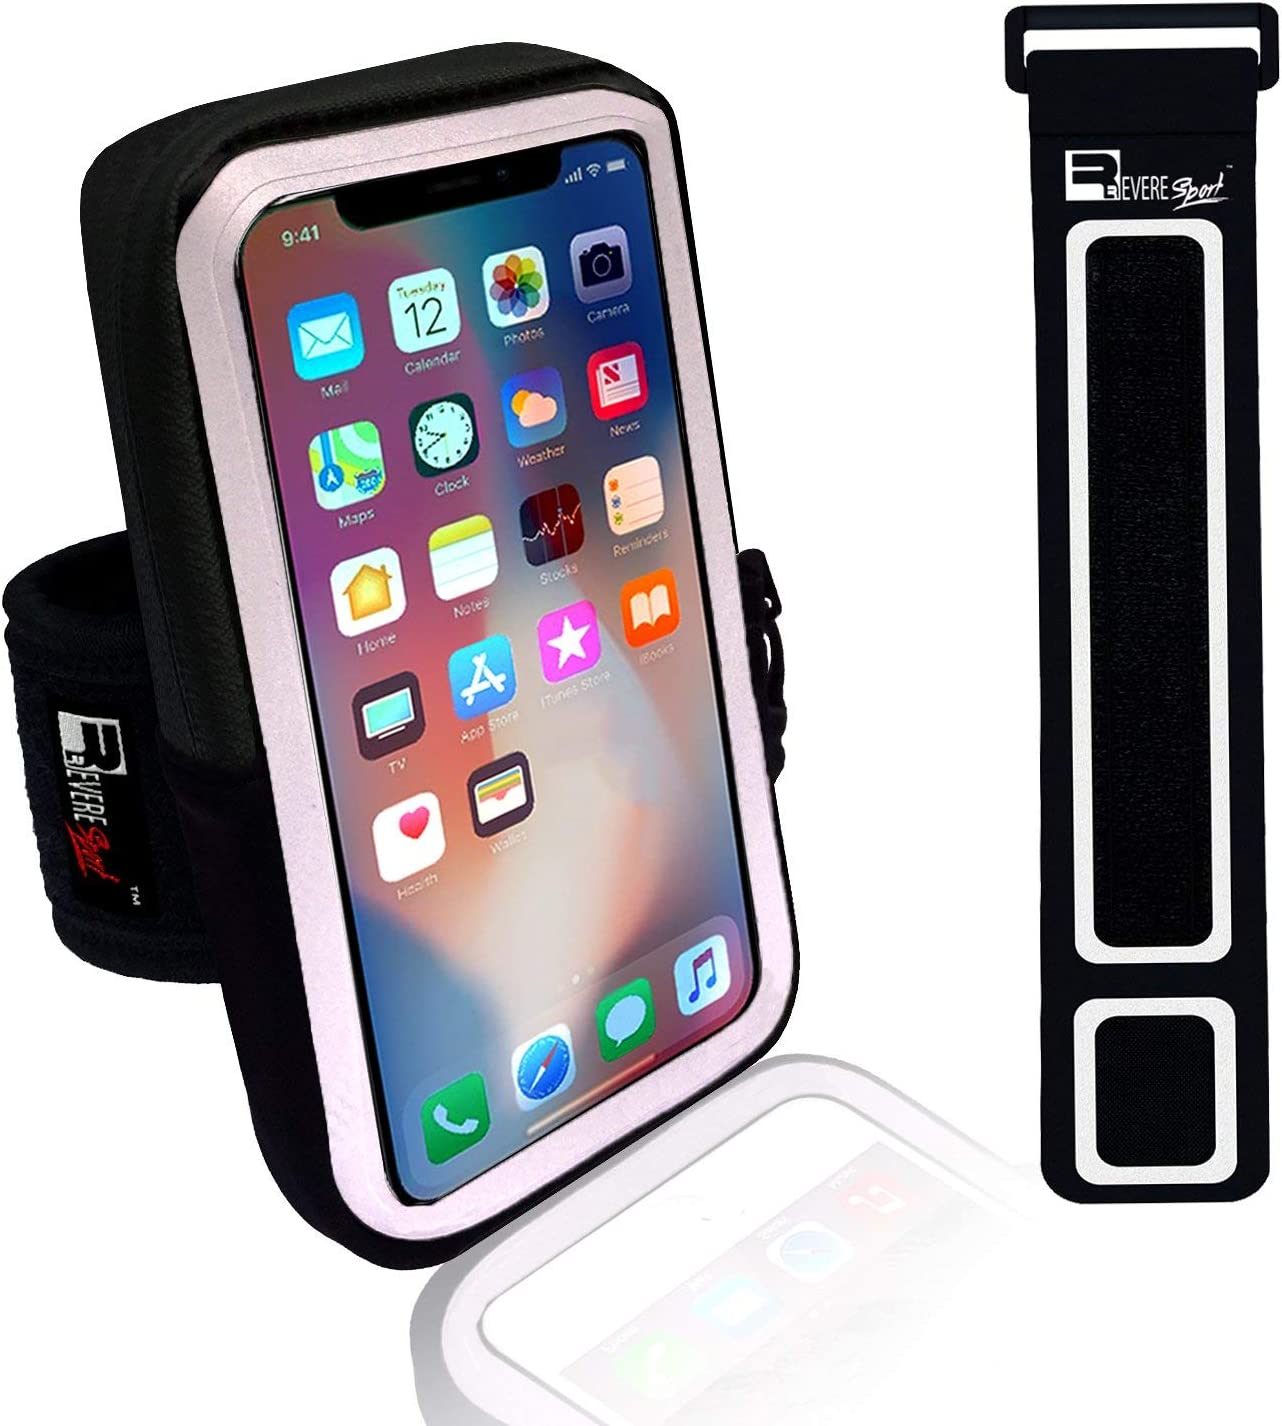 Premium iPhone X/10 Running Armband with Face Scanner Access. Sports Phone Arm Case Holder for Runners, Gym Workouts